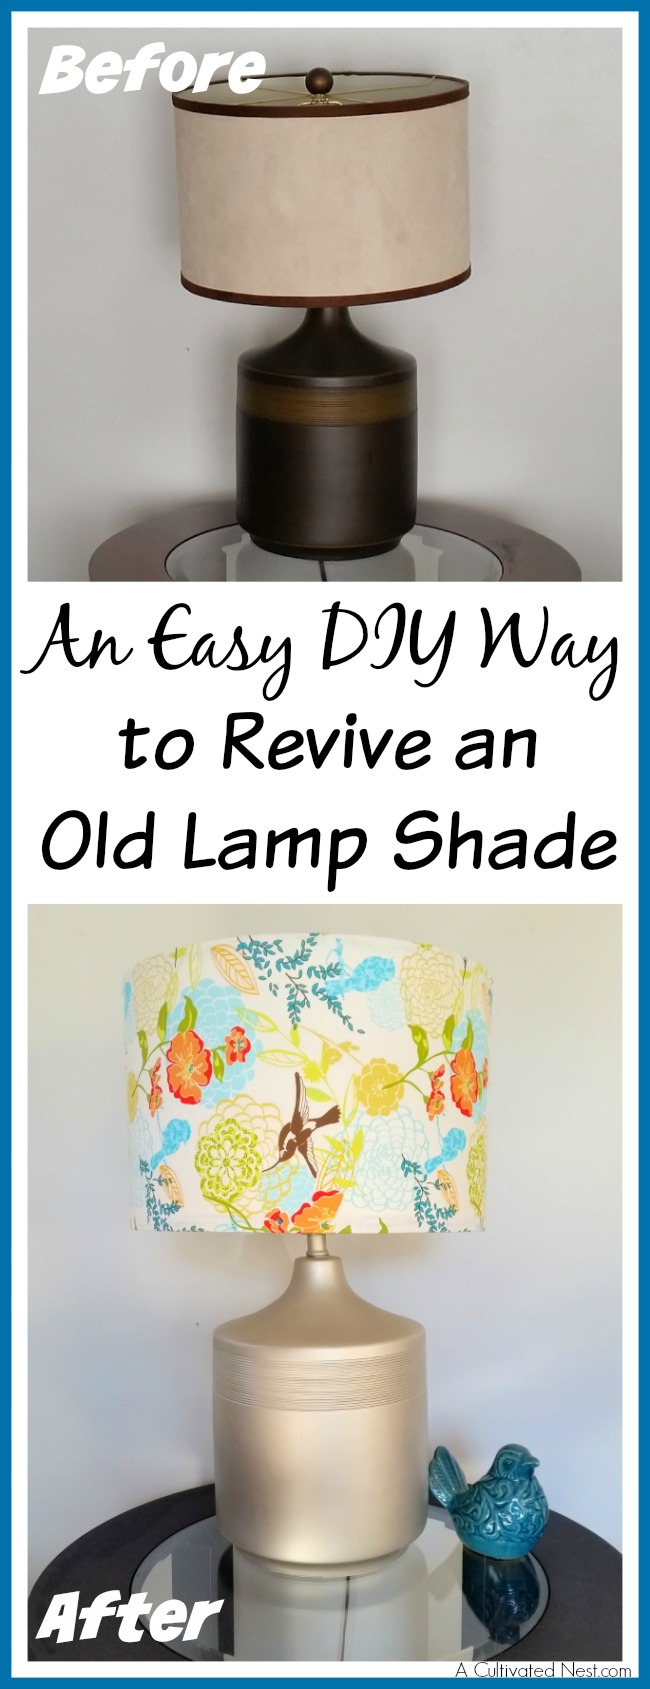 I had an ugly old lamp that really needed an update. Check out my easy DIY way to revive an old lamp shade! The lamp looks so much better now!